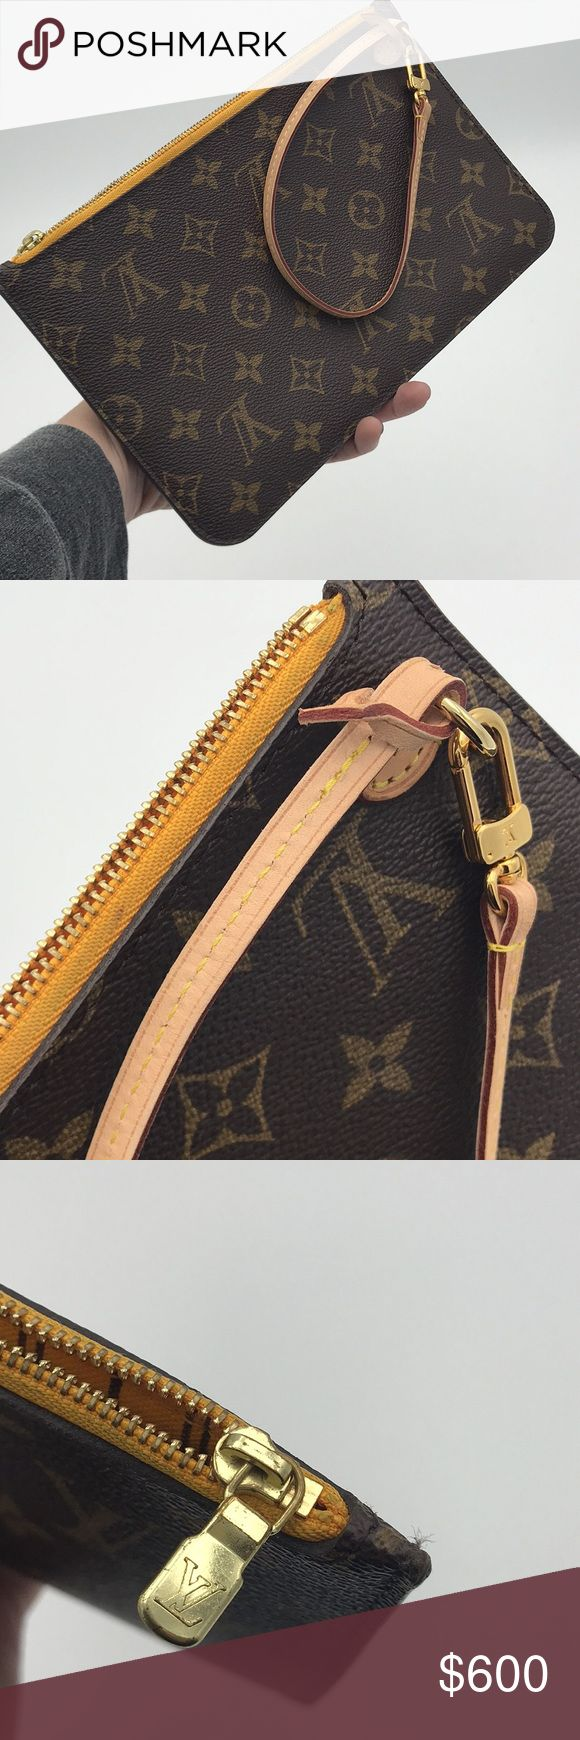 Louis Vuitton Pouchette with yellow interior neverfull mm pouchette with minor signs of wear in the interior as shown. Louis Vuitton Bags Clutches & Wristlets